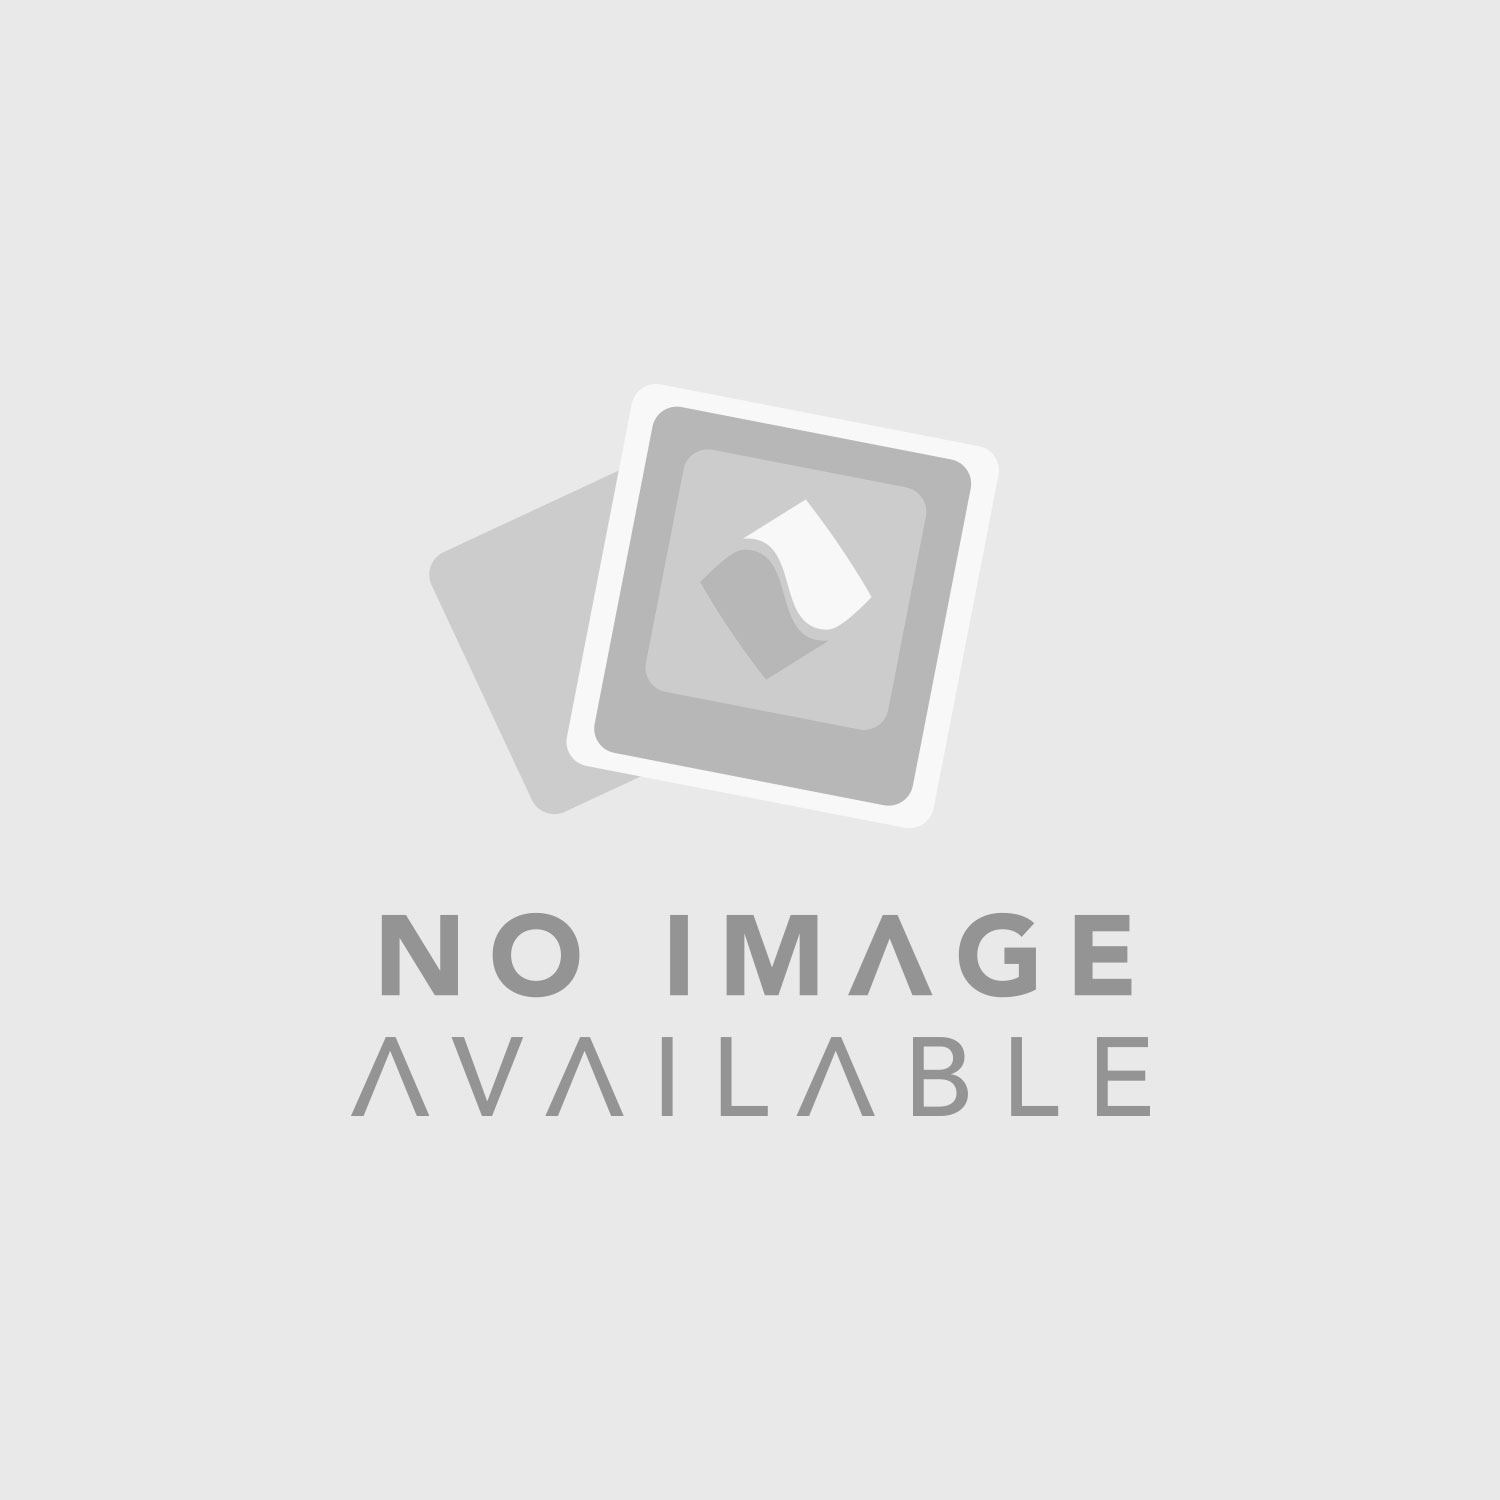 Neutrik NLT8FX 8-Pole Female speakON Cable Connector (Nickel/Silver)